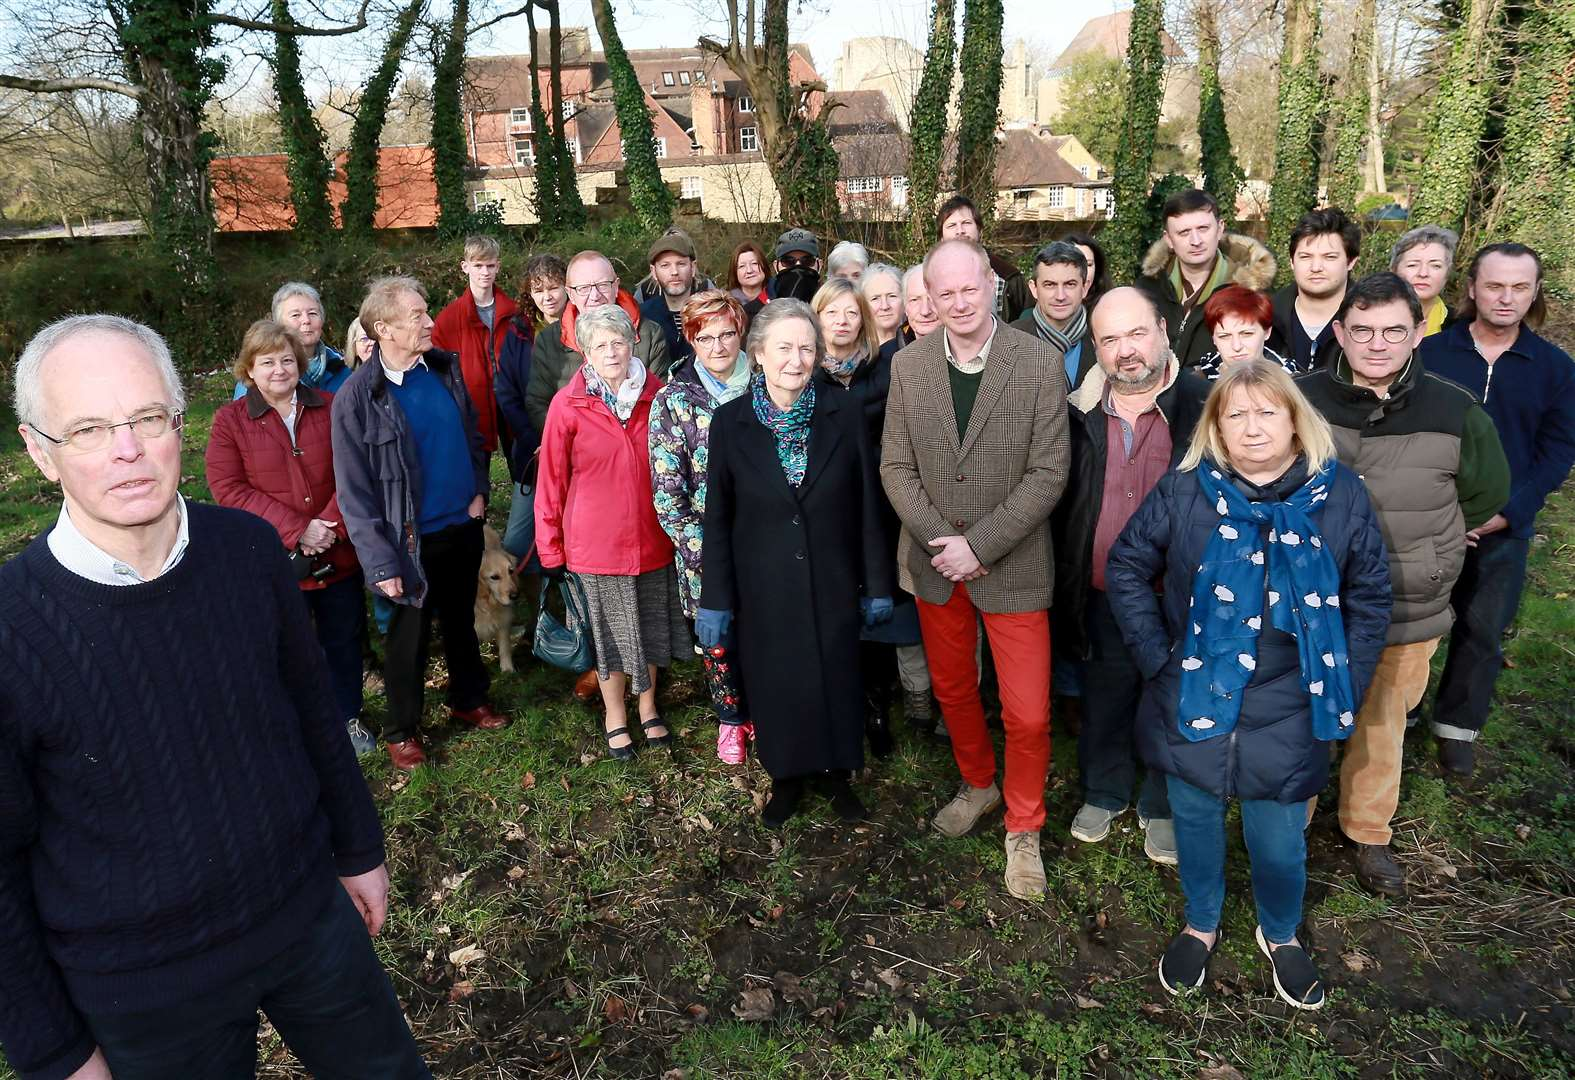 Inquiry into plan for homes next to nunnery